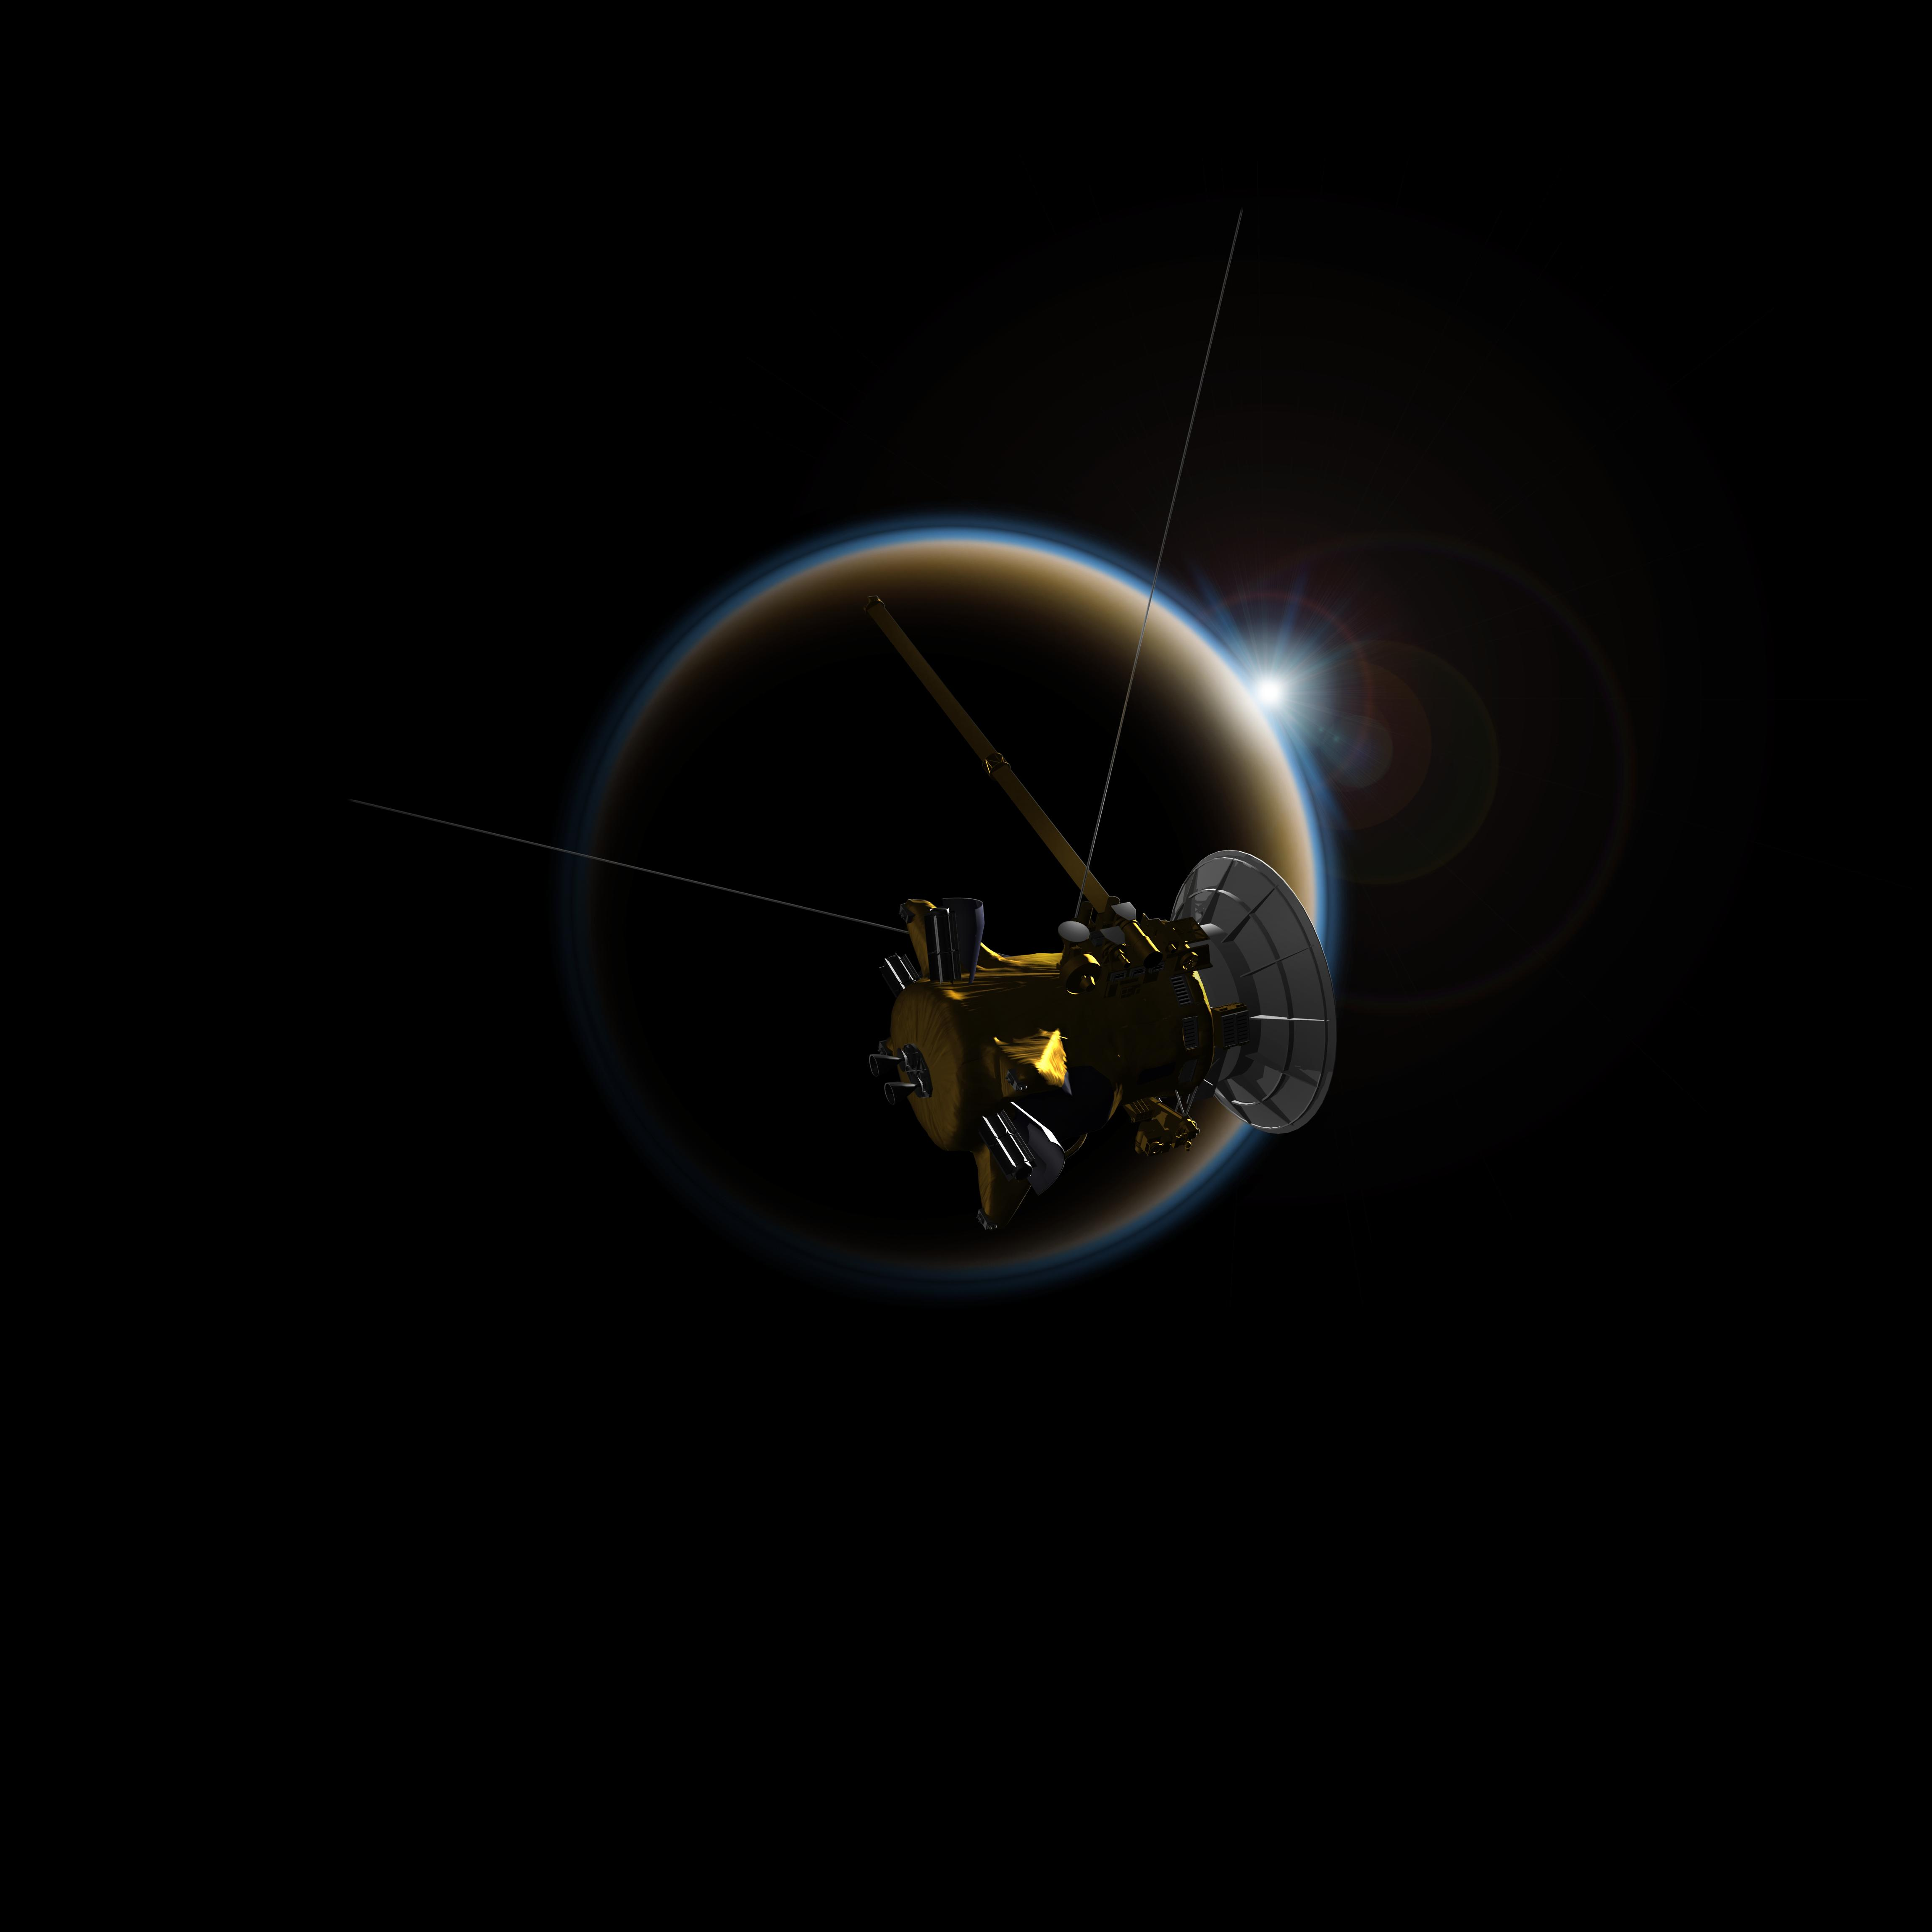 Artist's rendering of NASA's Cassini spacecraft observing a sunset through Titan's hazy atmosphere